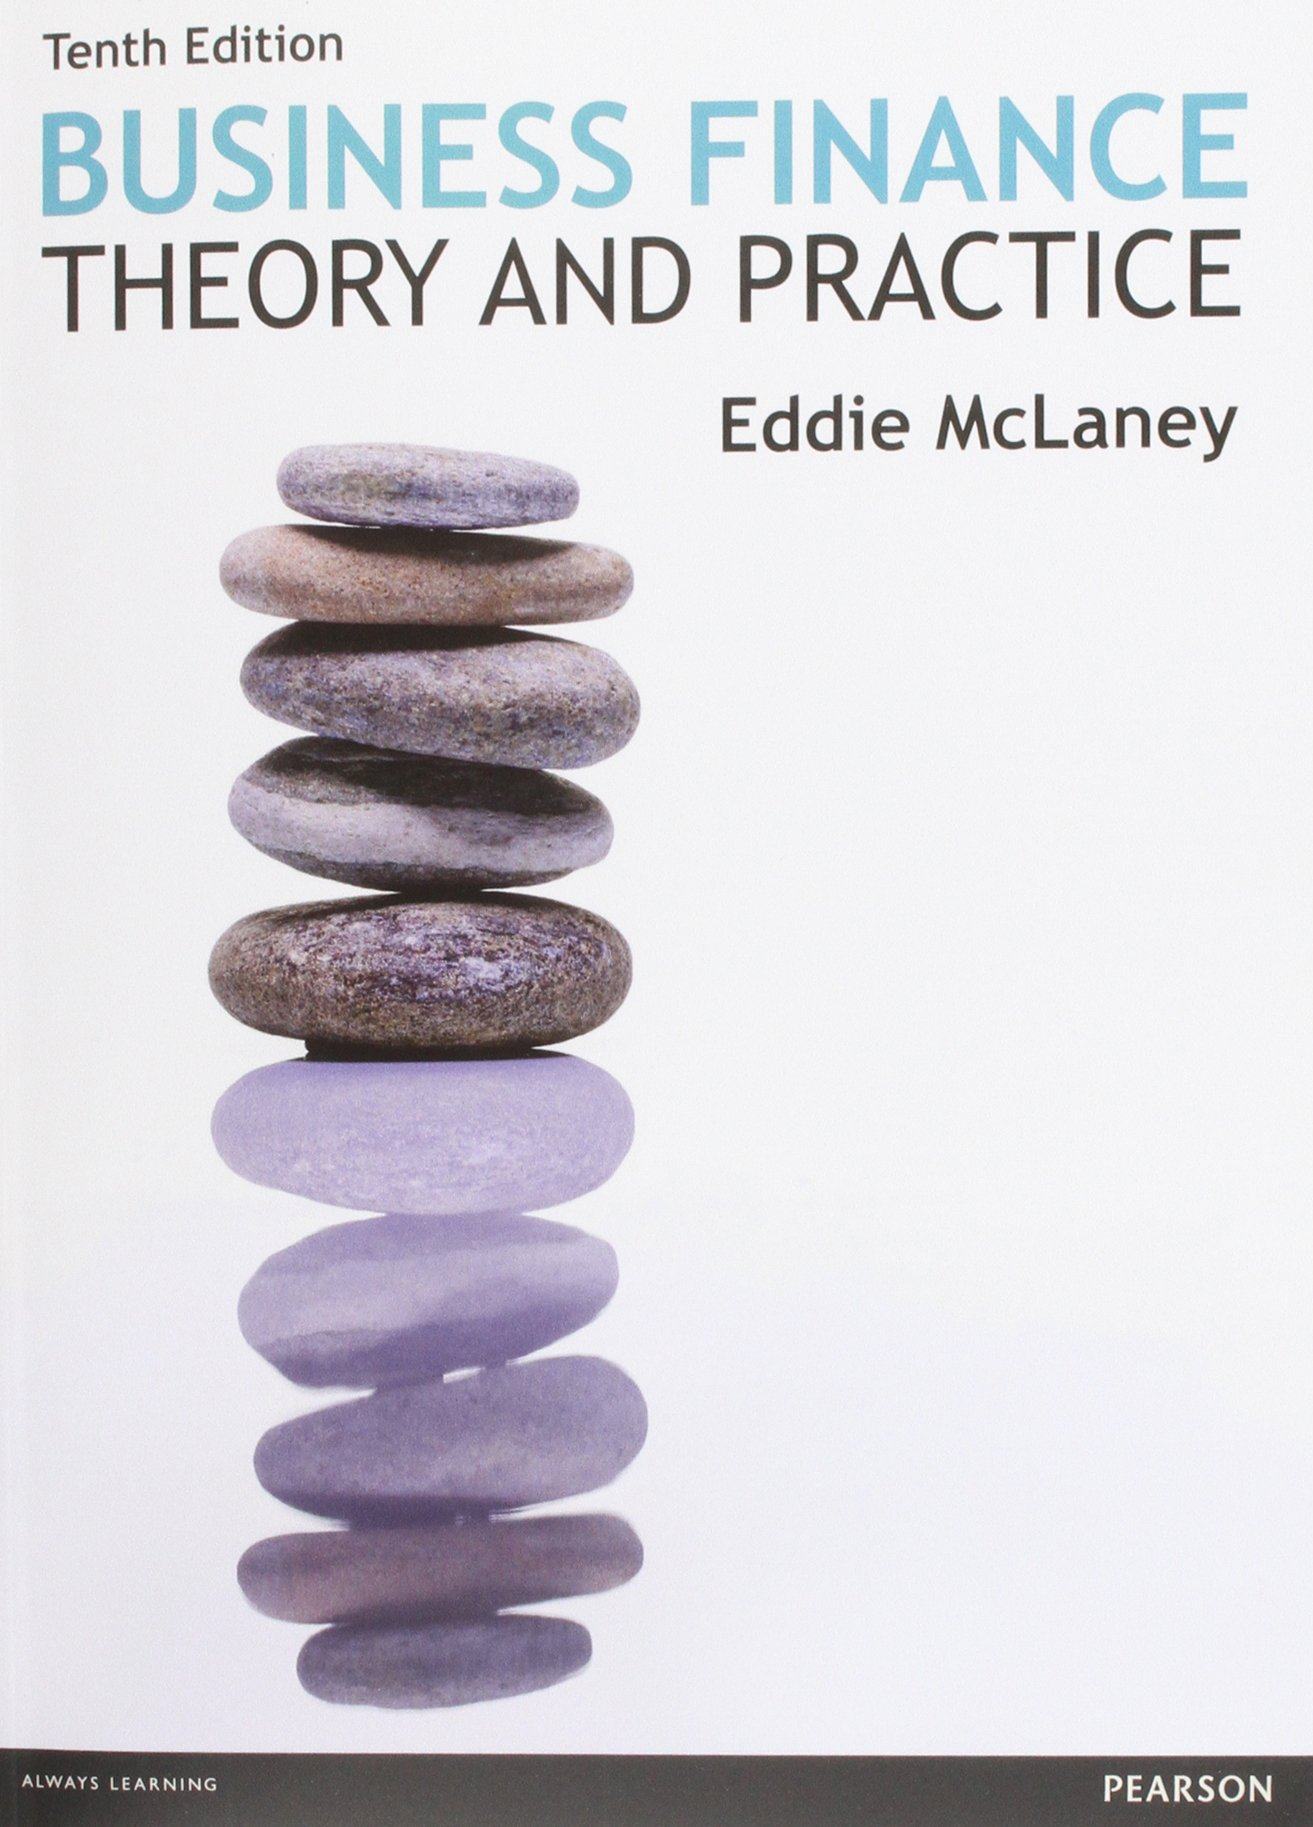 corporate finance theory and practice pdf